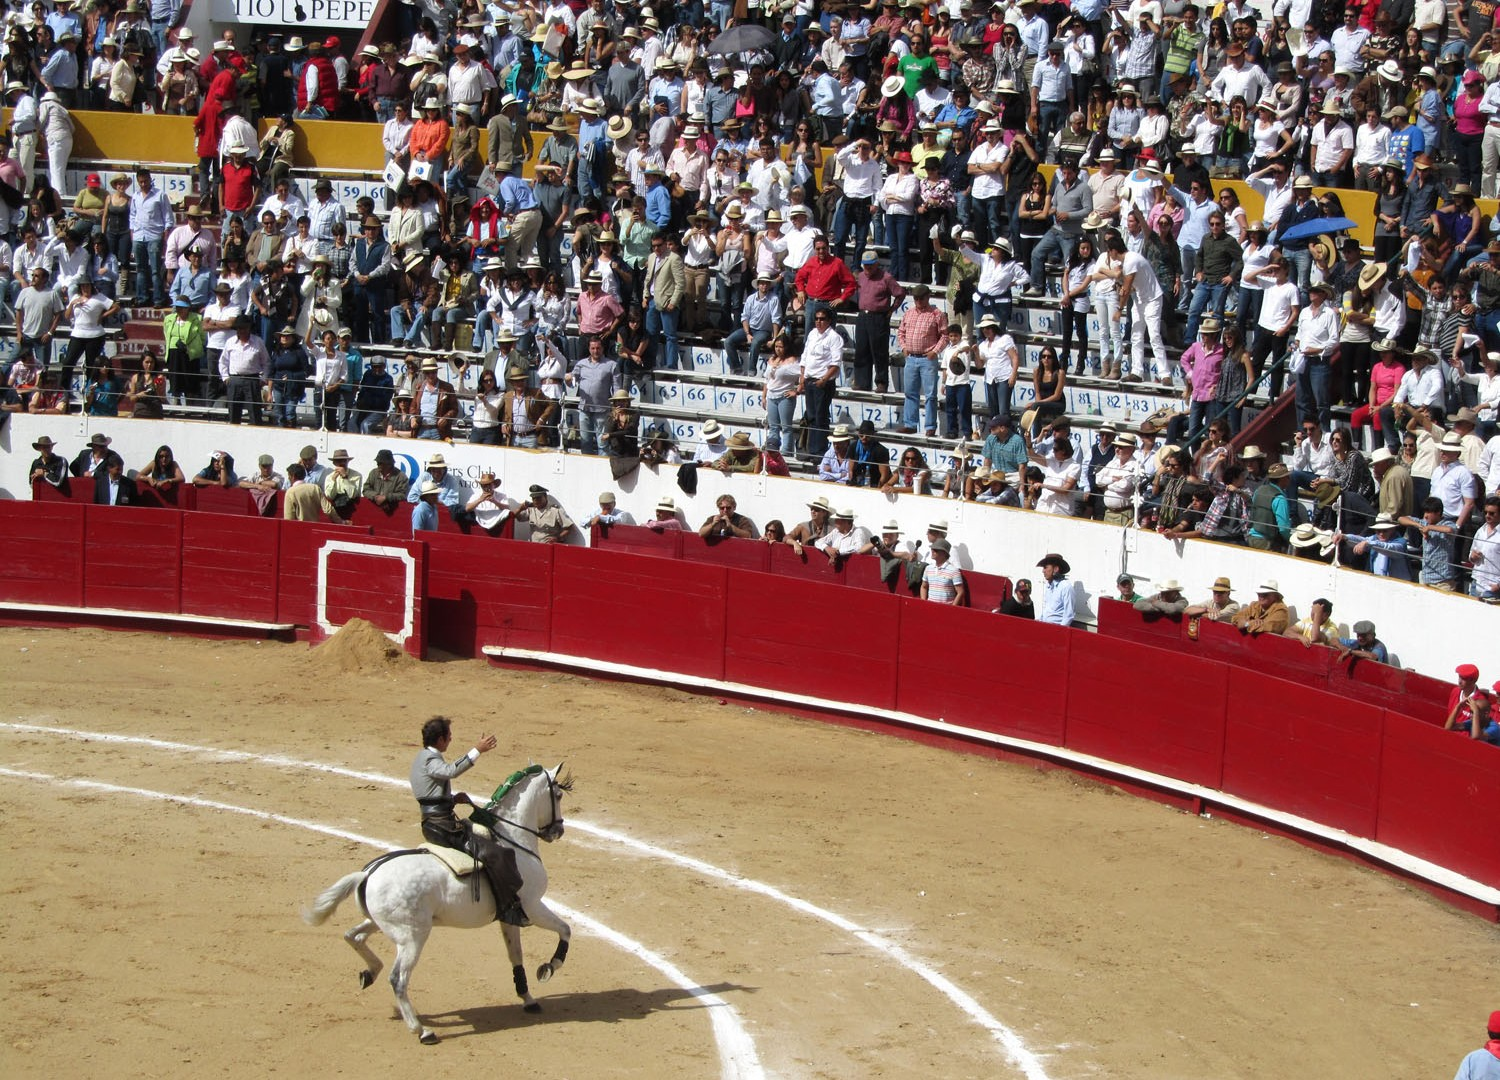 Ecuador-Quito-Bullfight-Matador-On-Horseback